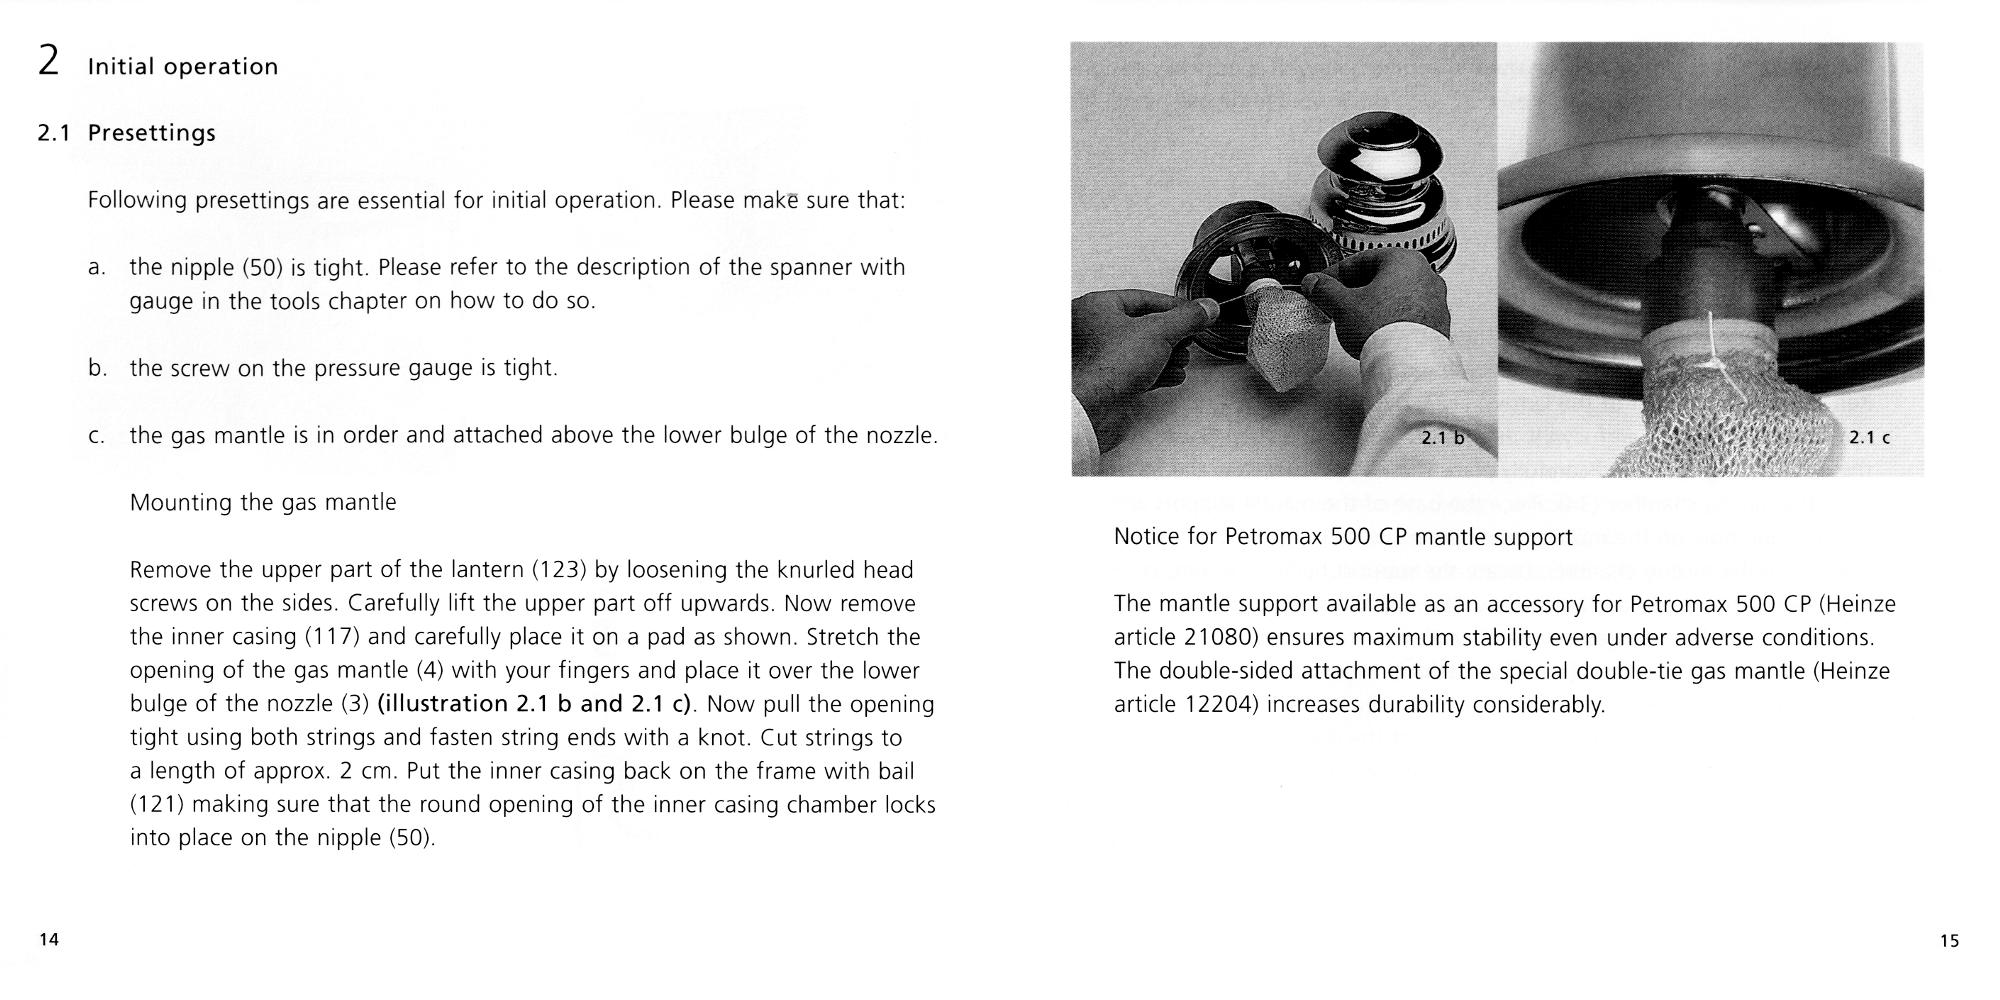 Petromax Instructions page 14 and 15